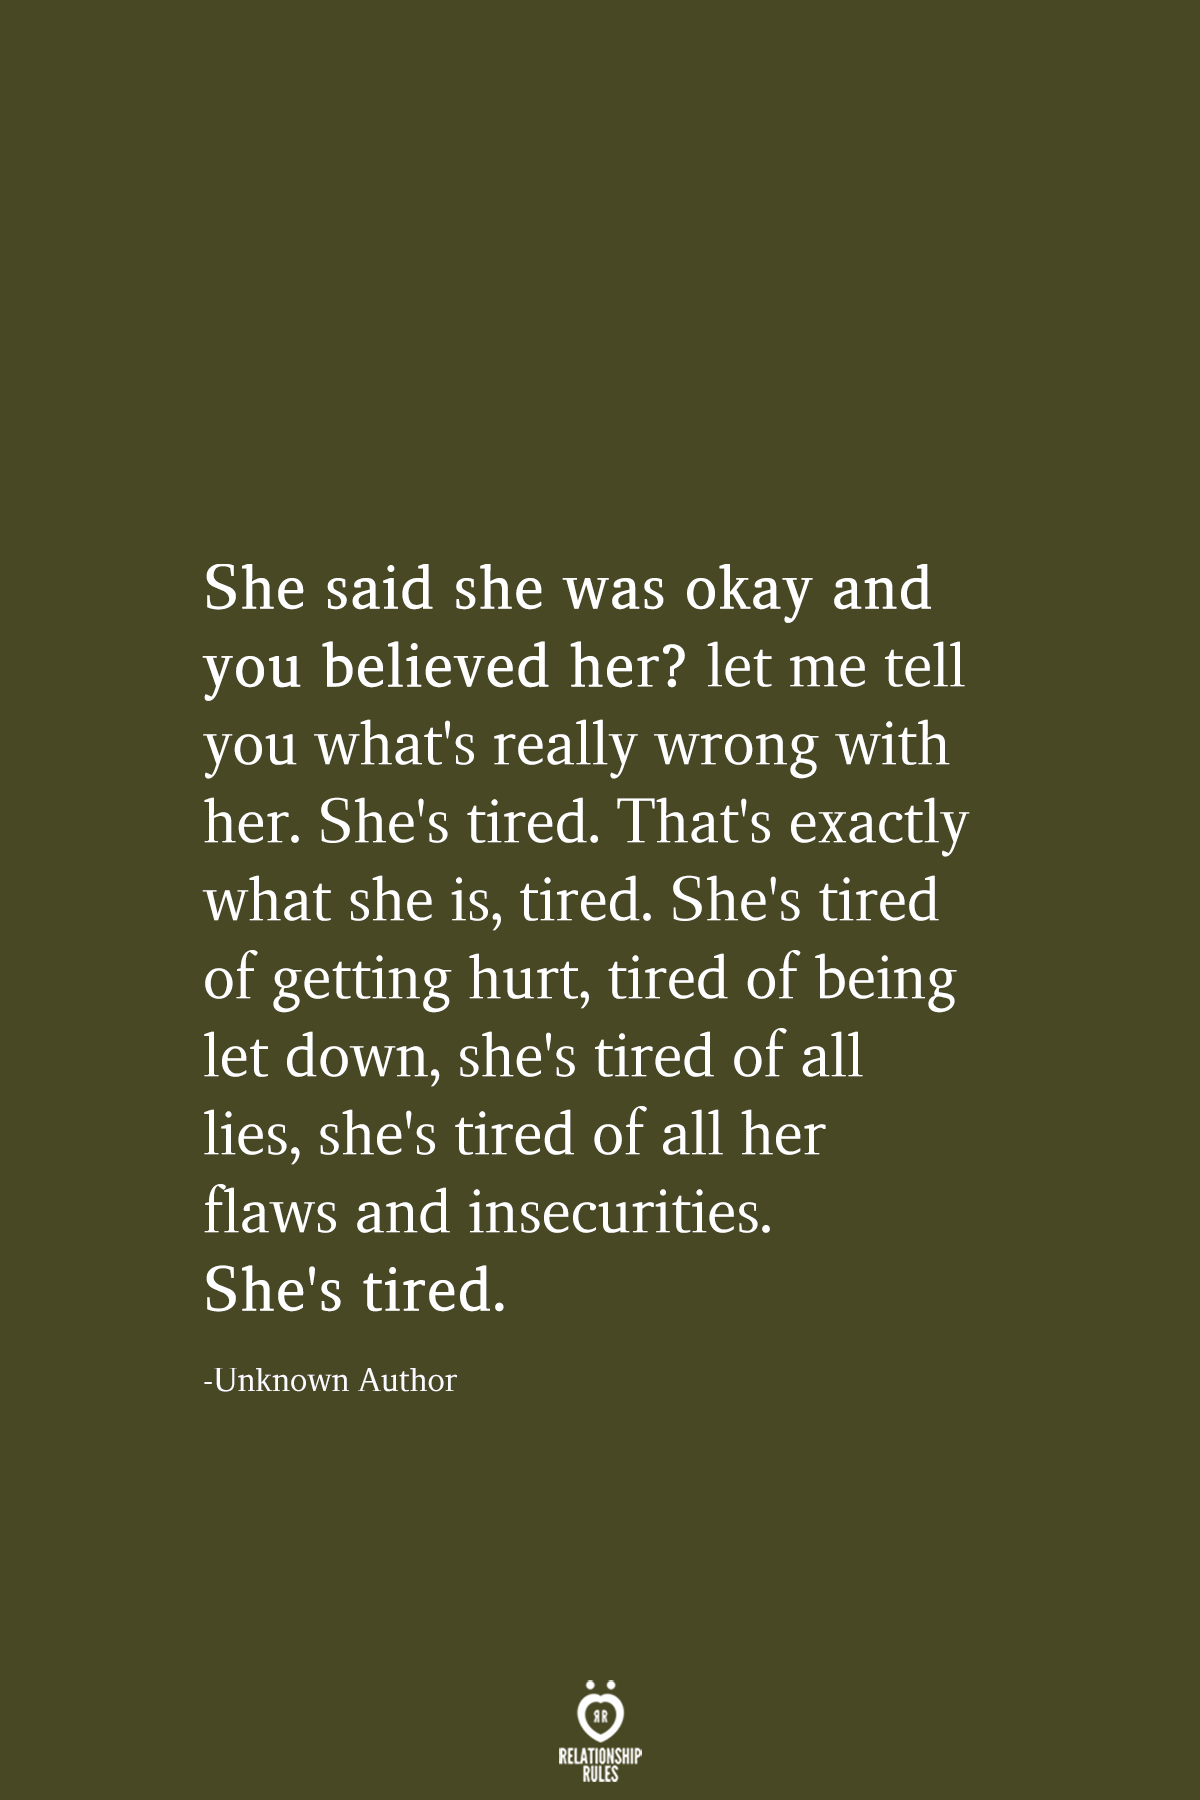 She said she was okay and you believed her? let me tell you what's really wrong with her. She's tired. That's exactly what she is, tired. She's tired of getting hurt, tired of being let down, she's tired of all lies, she's tired of all her flaws and insecurities. She's tired.  -Unknown Author